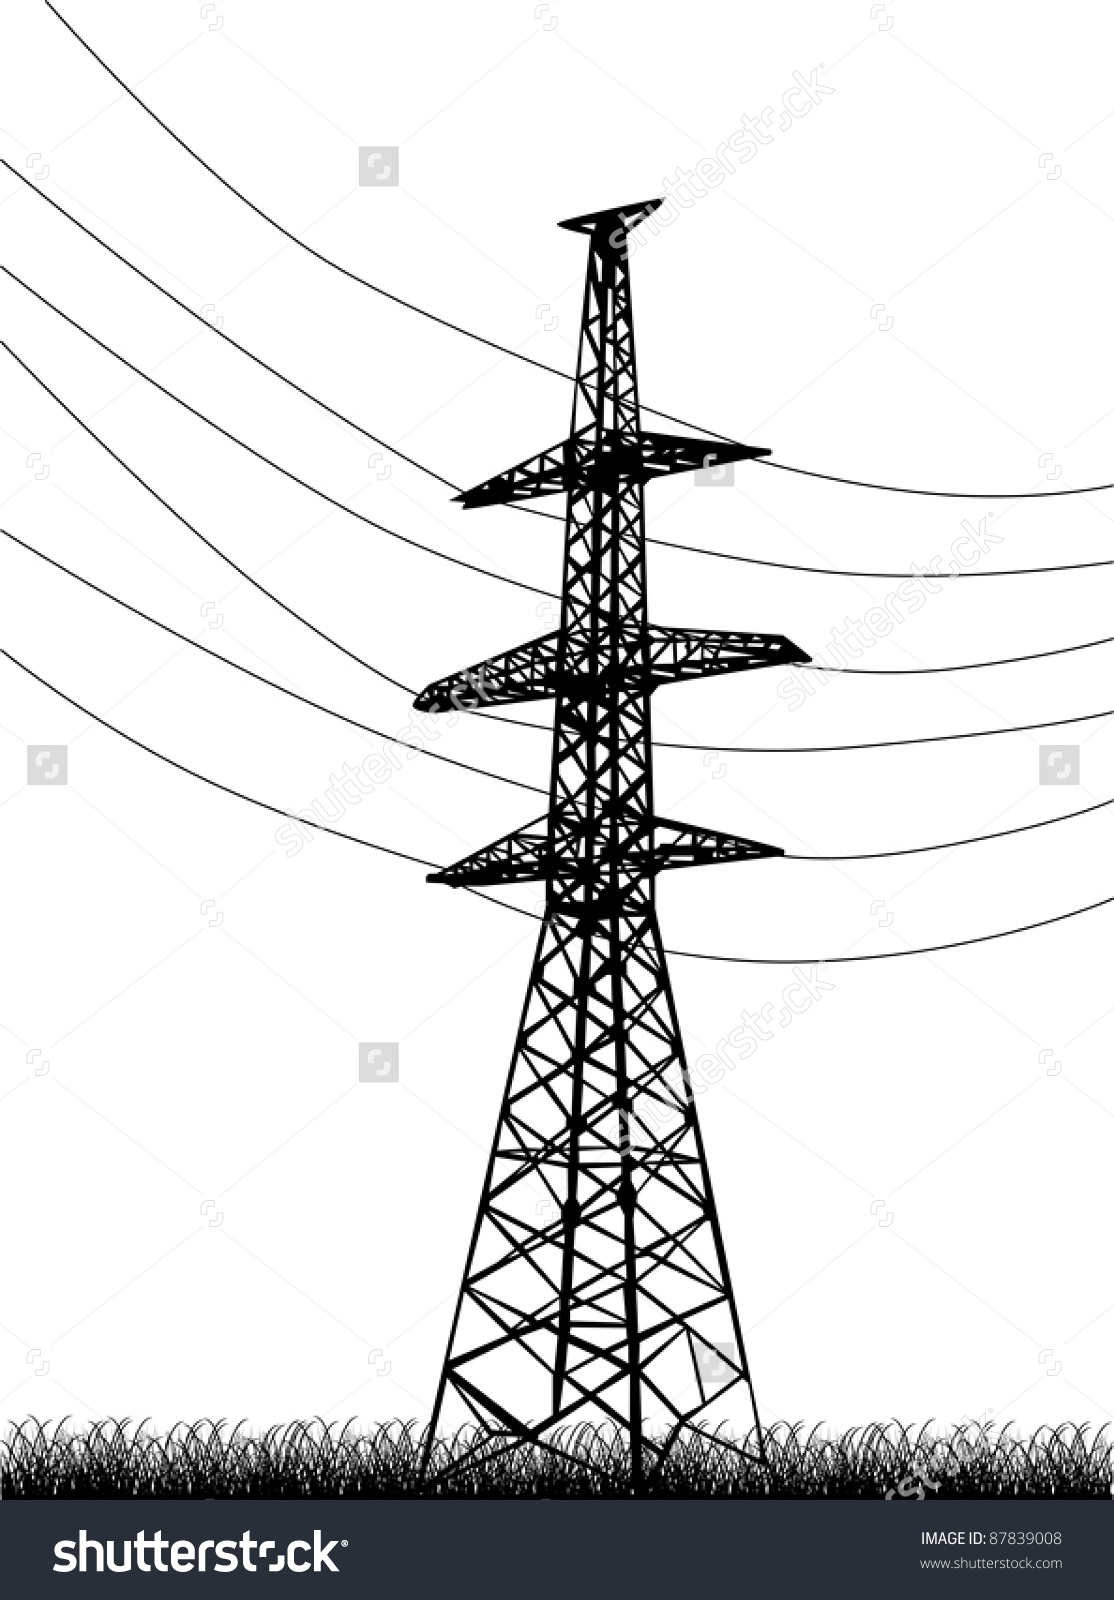 Illustration Electrical Pylon Isolated On White Stock Vector.